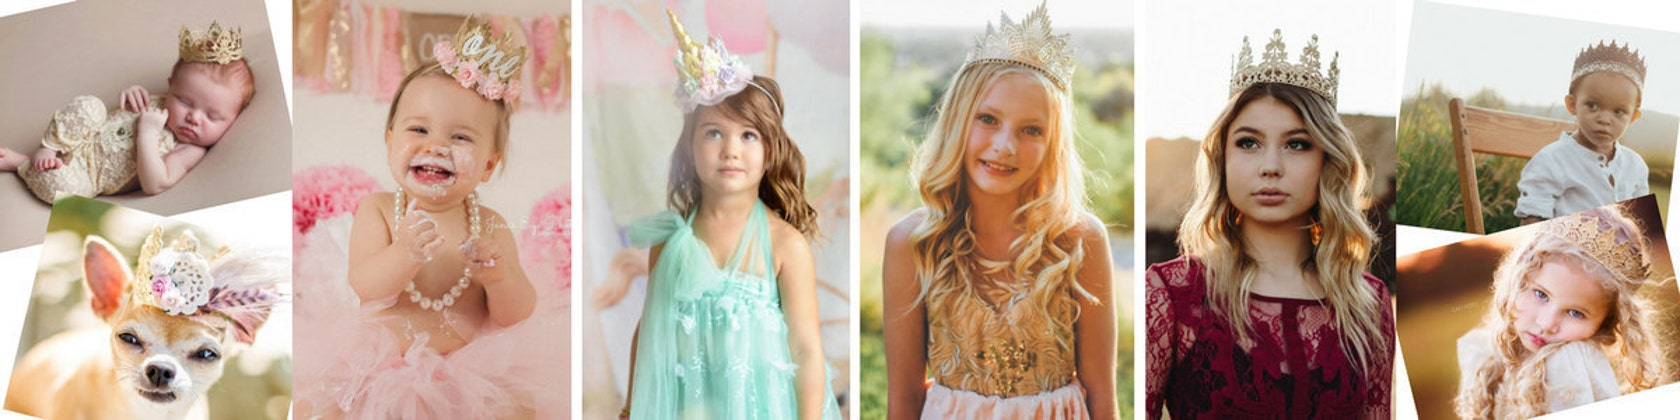 lovecrushcrowns LACE crowns tiaras for DREAMERS of